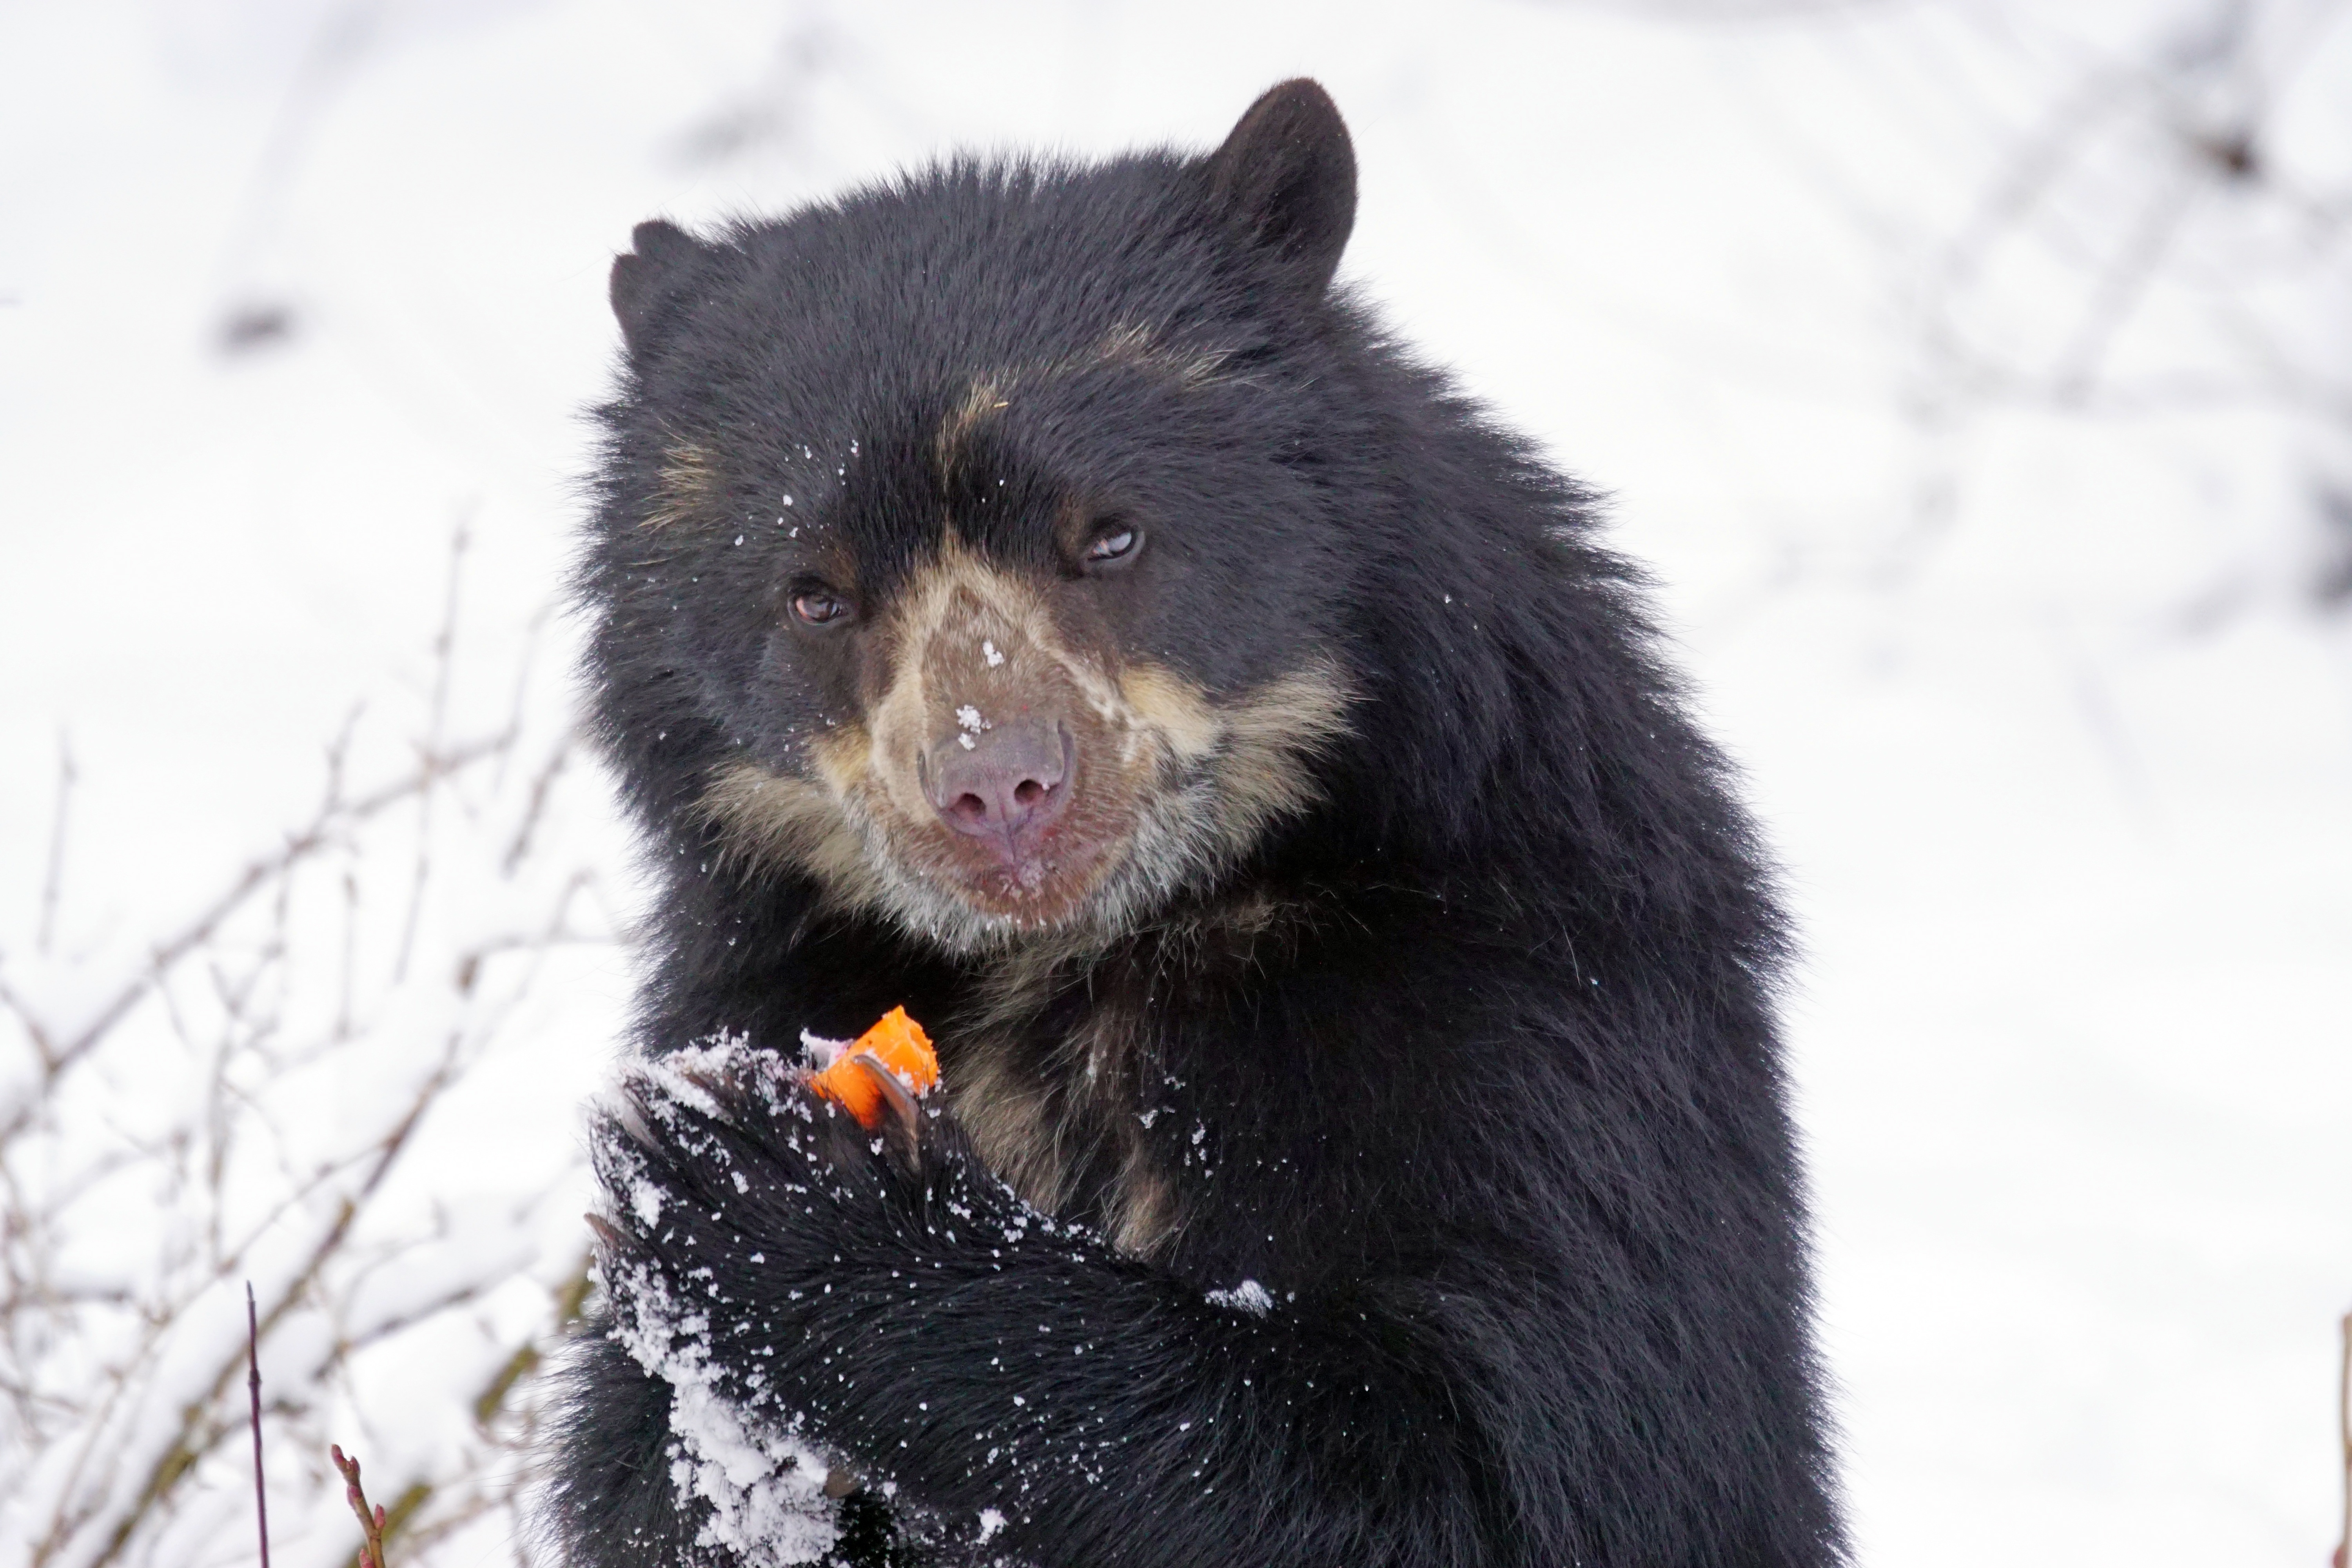 107251 download wallpaper Animals, Spectacled Bear, Andean Bear, Cool screensavers and pictures for free